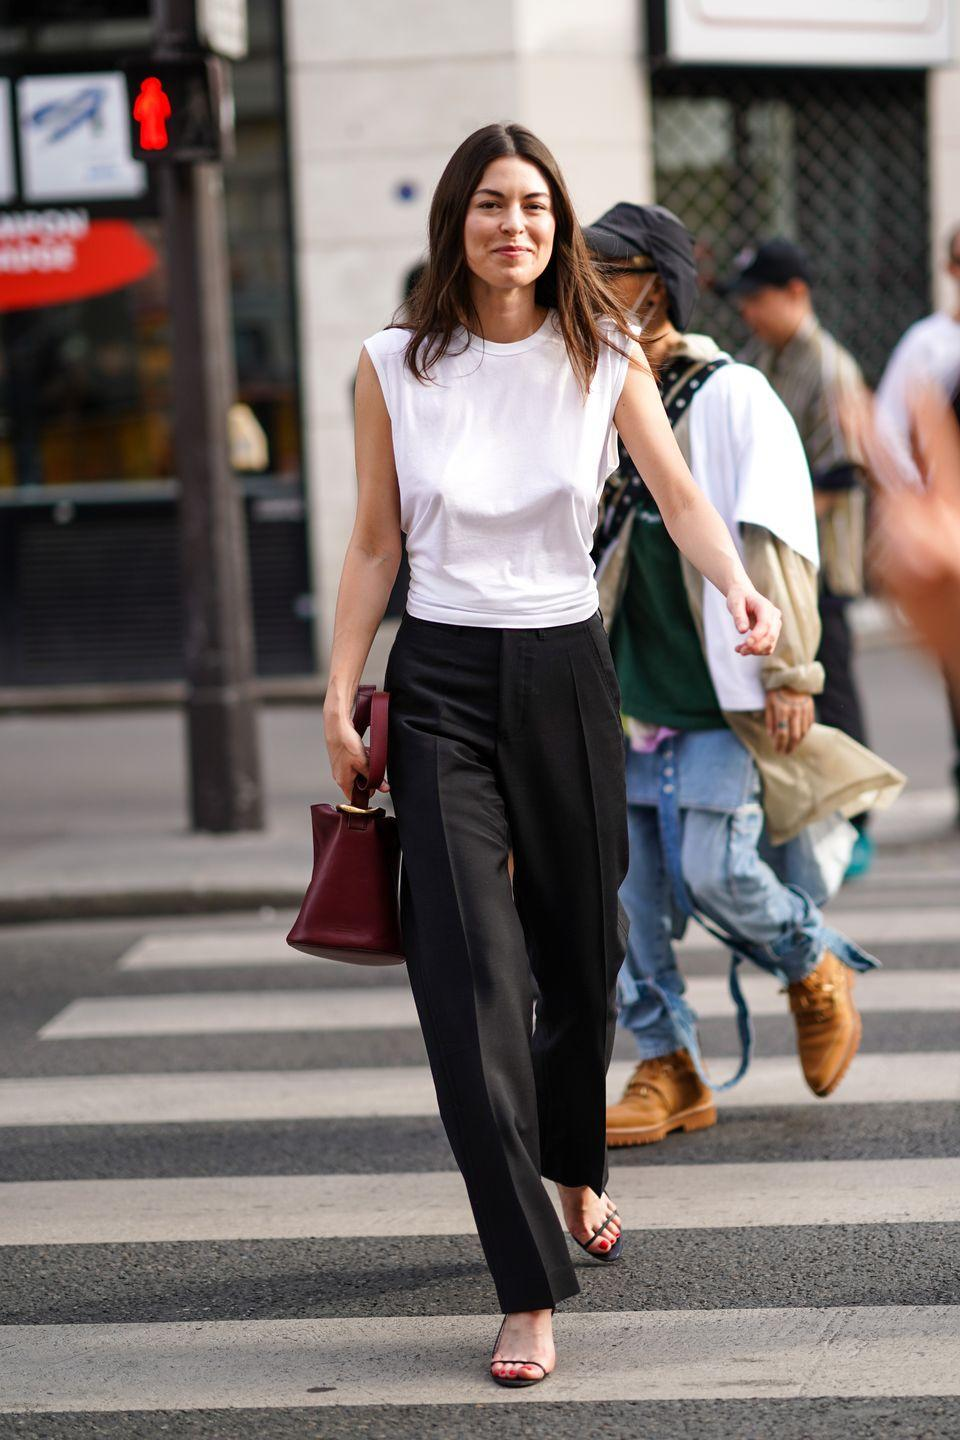 """<p>Monochrome is also a fail-safe office look. Add some summer vibes by switching out your blouse for a sleeveless number, <a href=""""https://www.cosmopolitan.com/uk/fashion/style/g32402890/platform-sandals/"""" rel=""""nofollow noopener"""" target=""""_blank"""" data-ylk=""""slk:sandals"""" class=""""link rapid-noclick-resp"""">sandals</a> and a contrasting bag. </p>"""